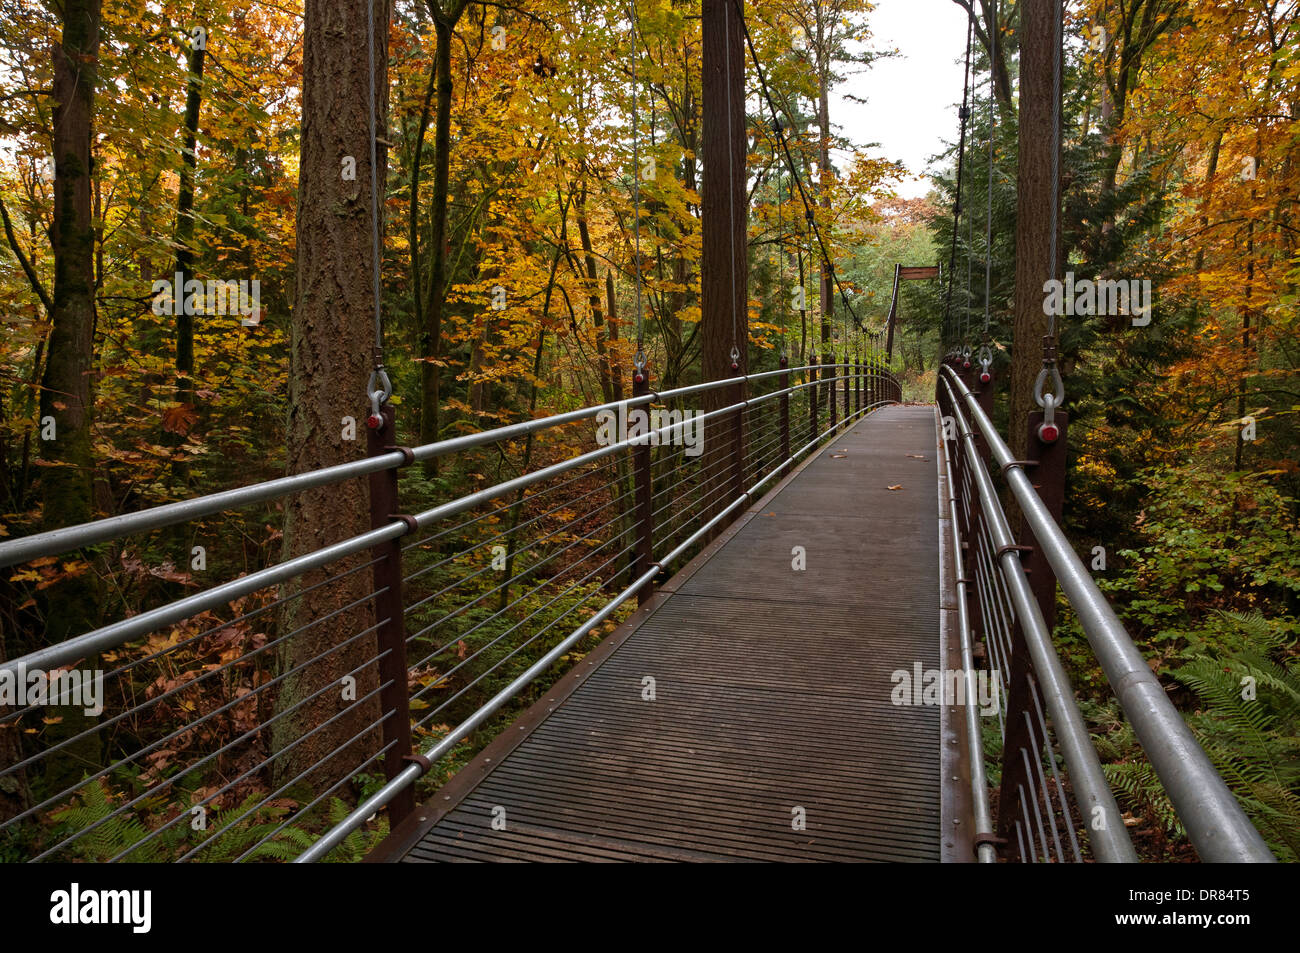 WASHINGTON - Suspension Bridge on the Ravine Experience Trail in the ...